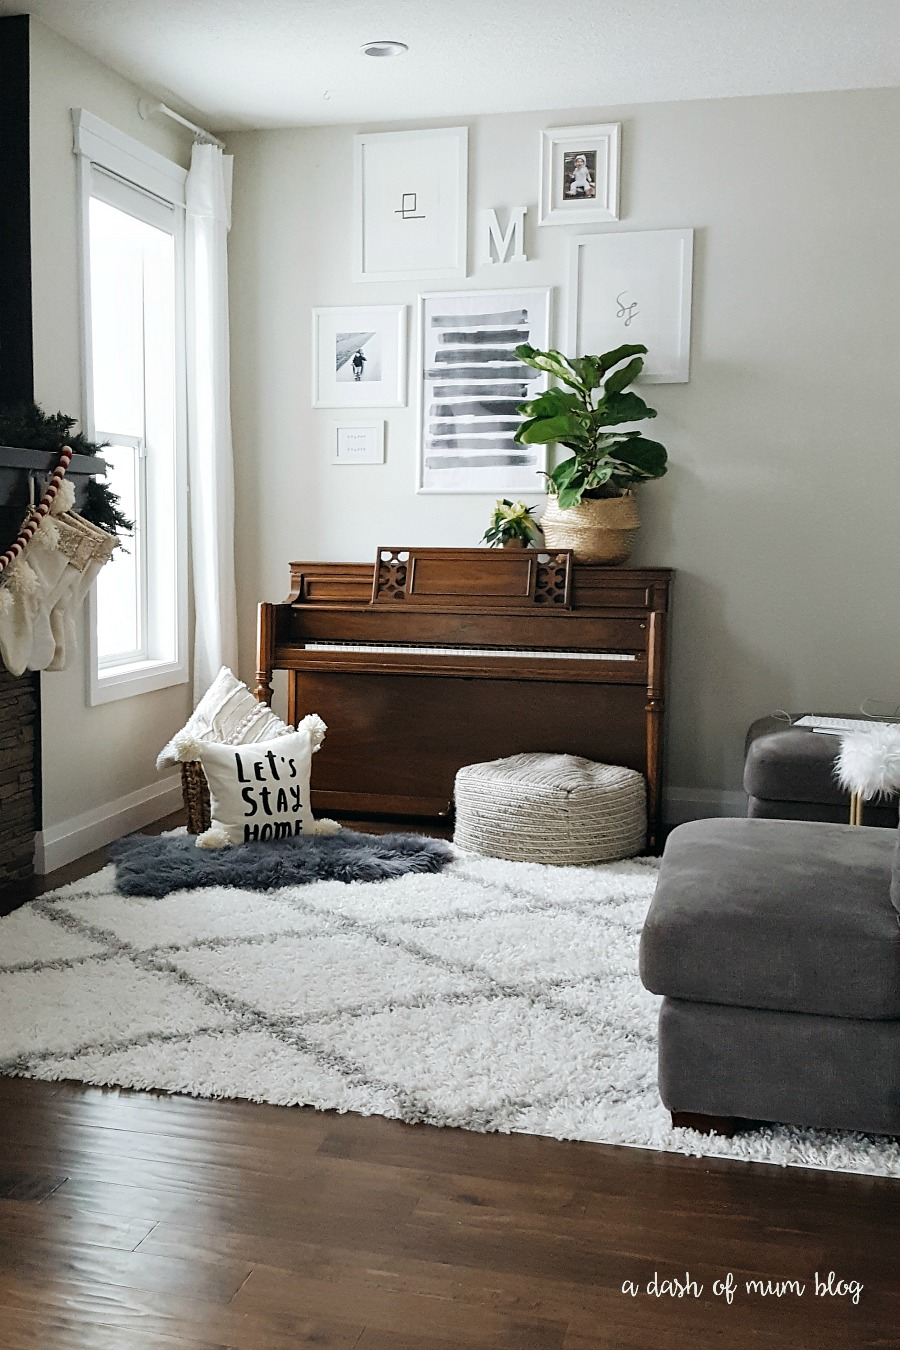 A White Shag Rug In The Living Room With A Baby Toddler